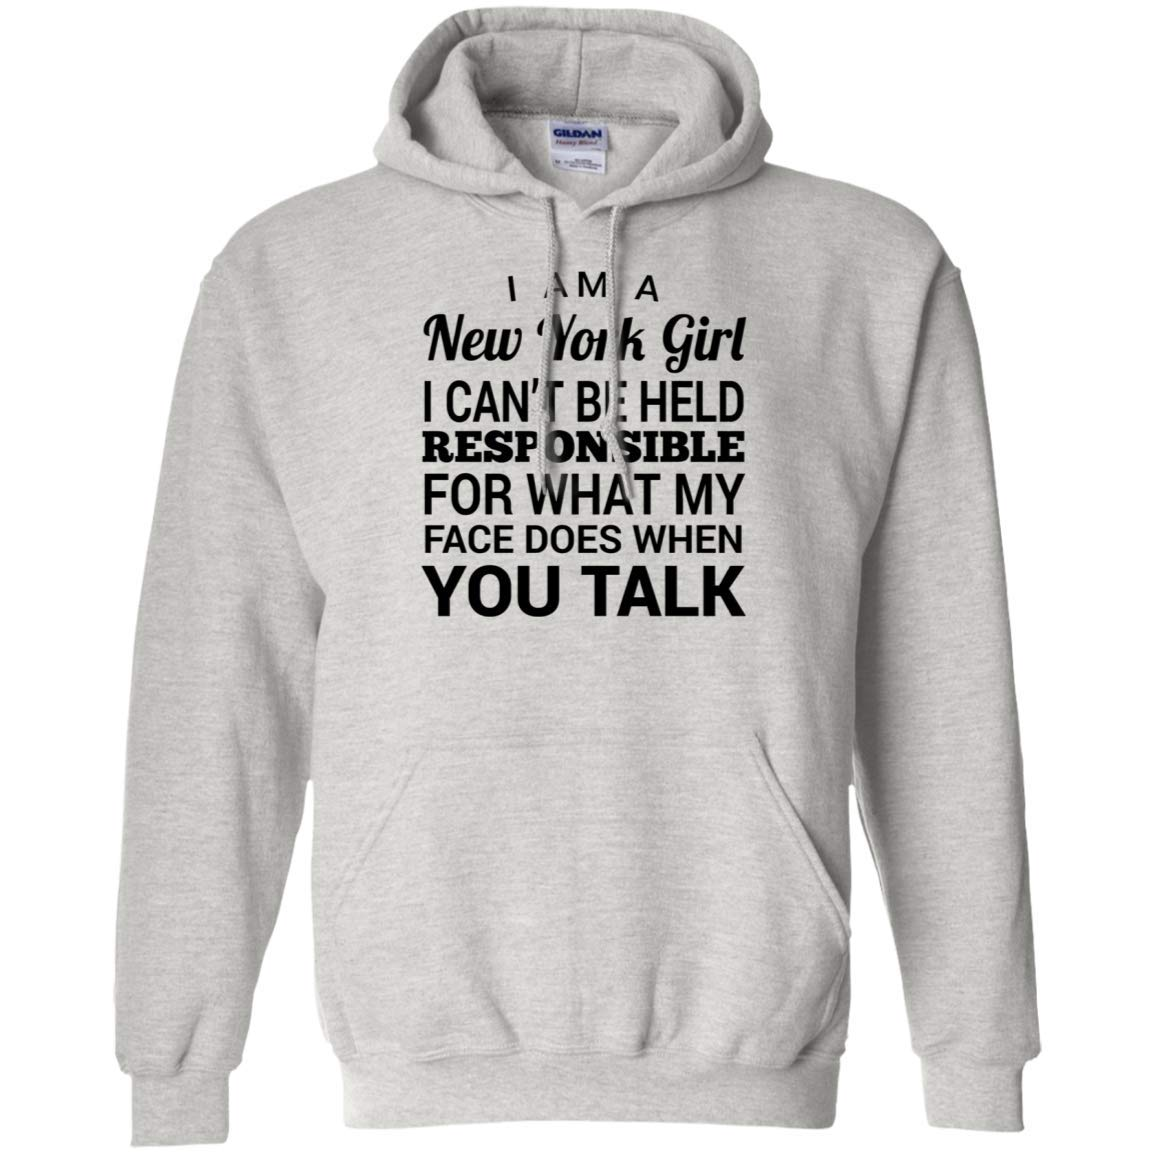 Im A New York Girl I Cant Be Held Responsible for What My Face Does When You Talk Pullover Hoodie